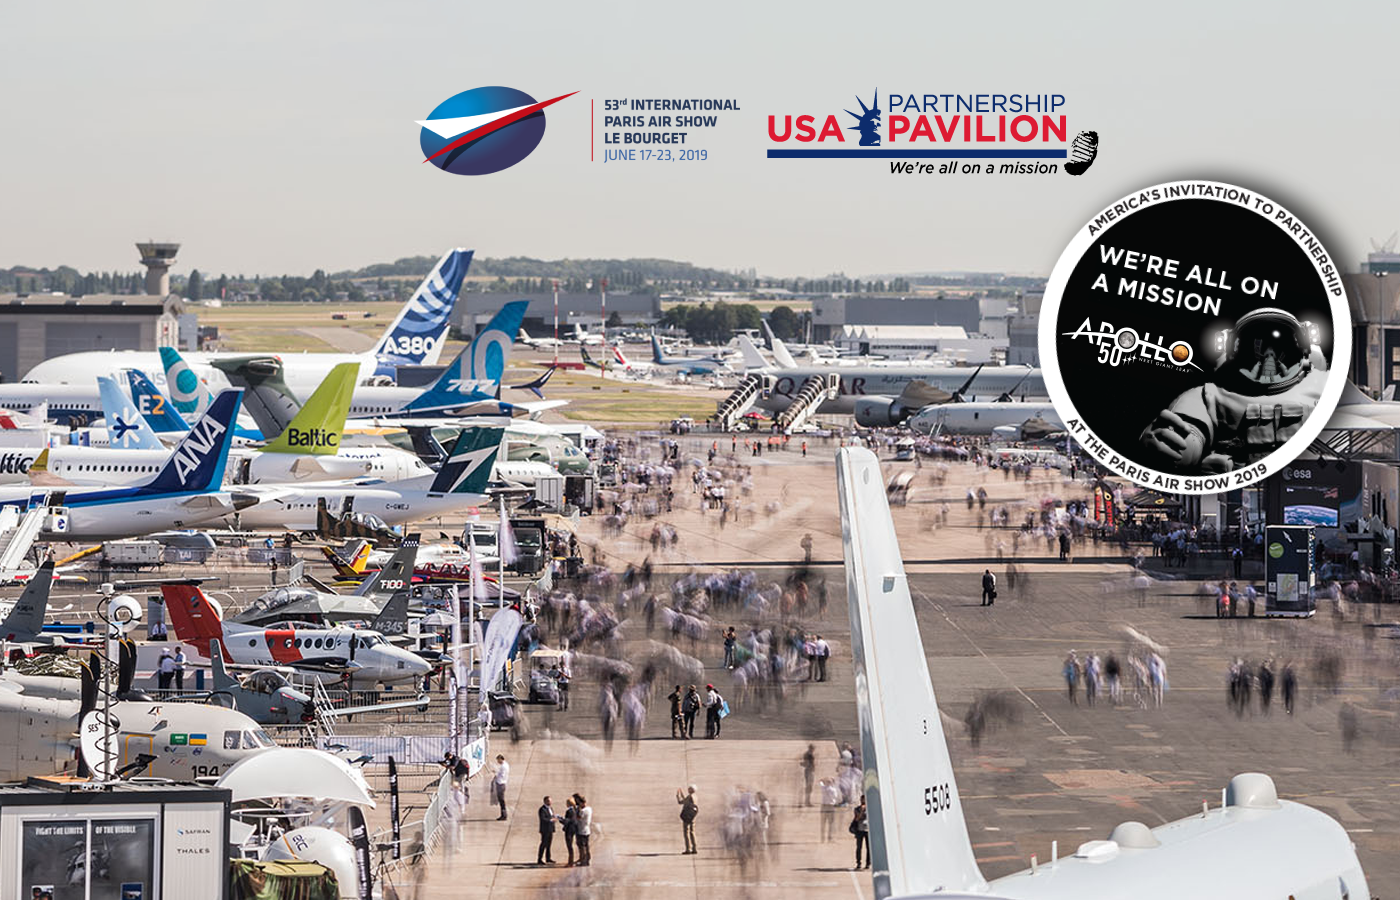 Paris Air Show 2019 USA Partnership Pavilion